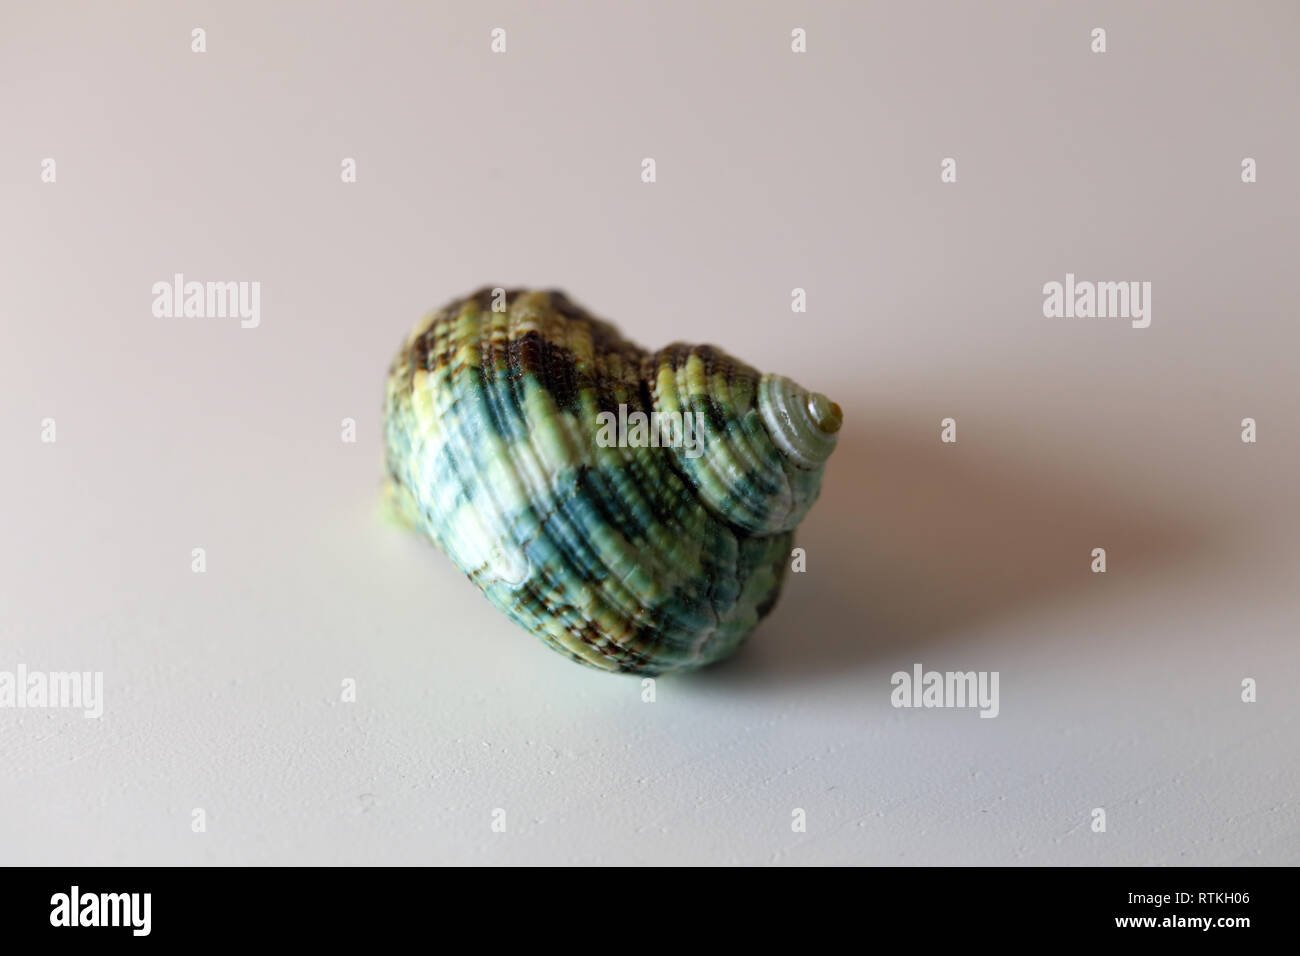 Still life photo of a beautiful green sea mollusk shell on a white table. Lovely souvenir from a vacation by the sea. Macro image with colors. - Stock Image